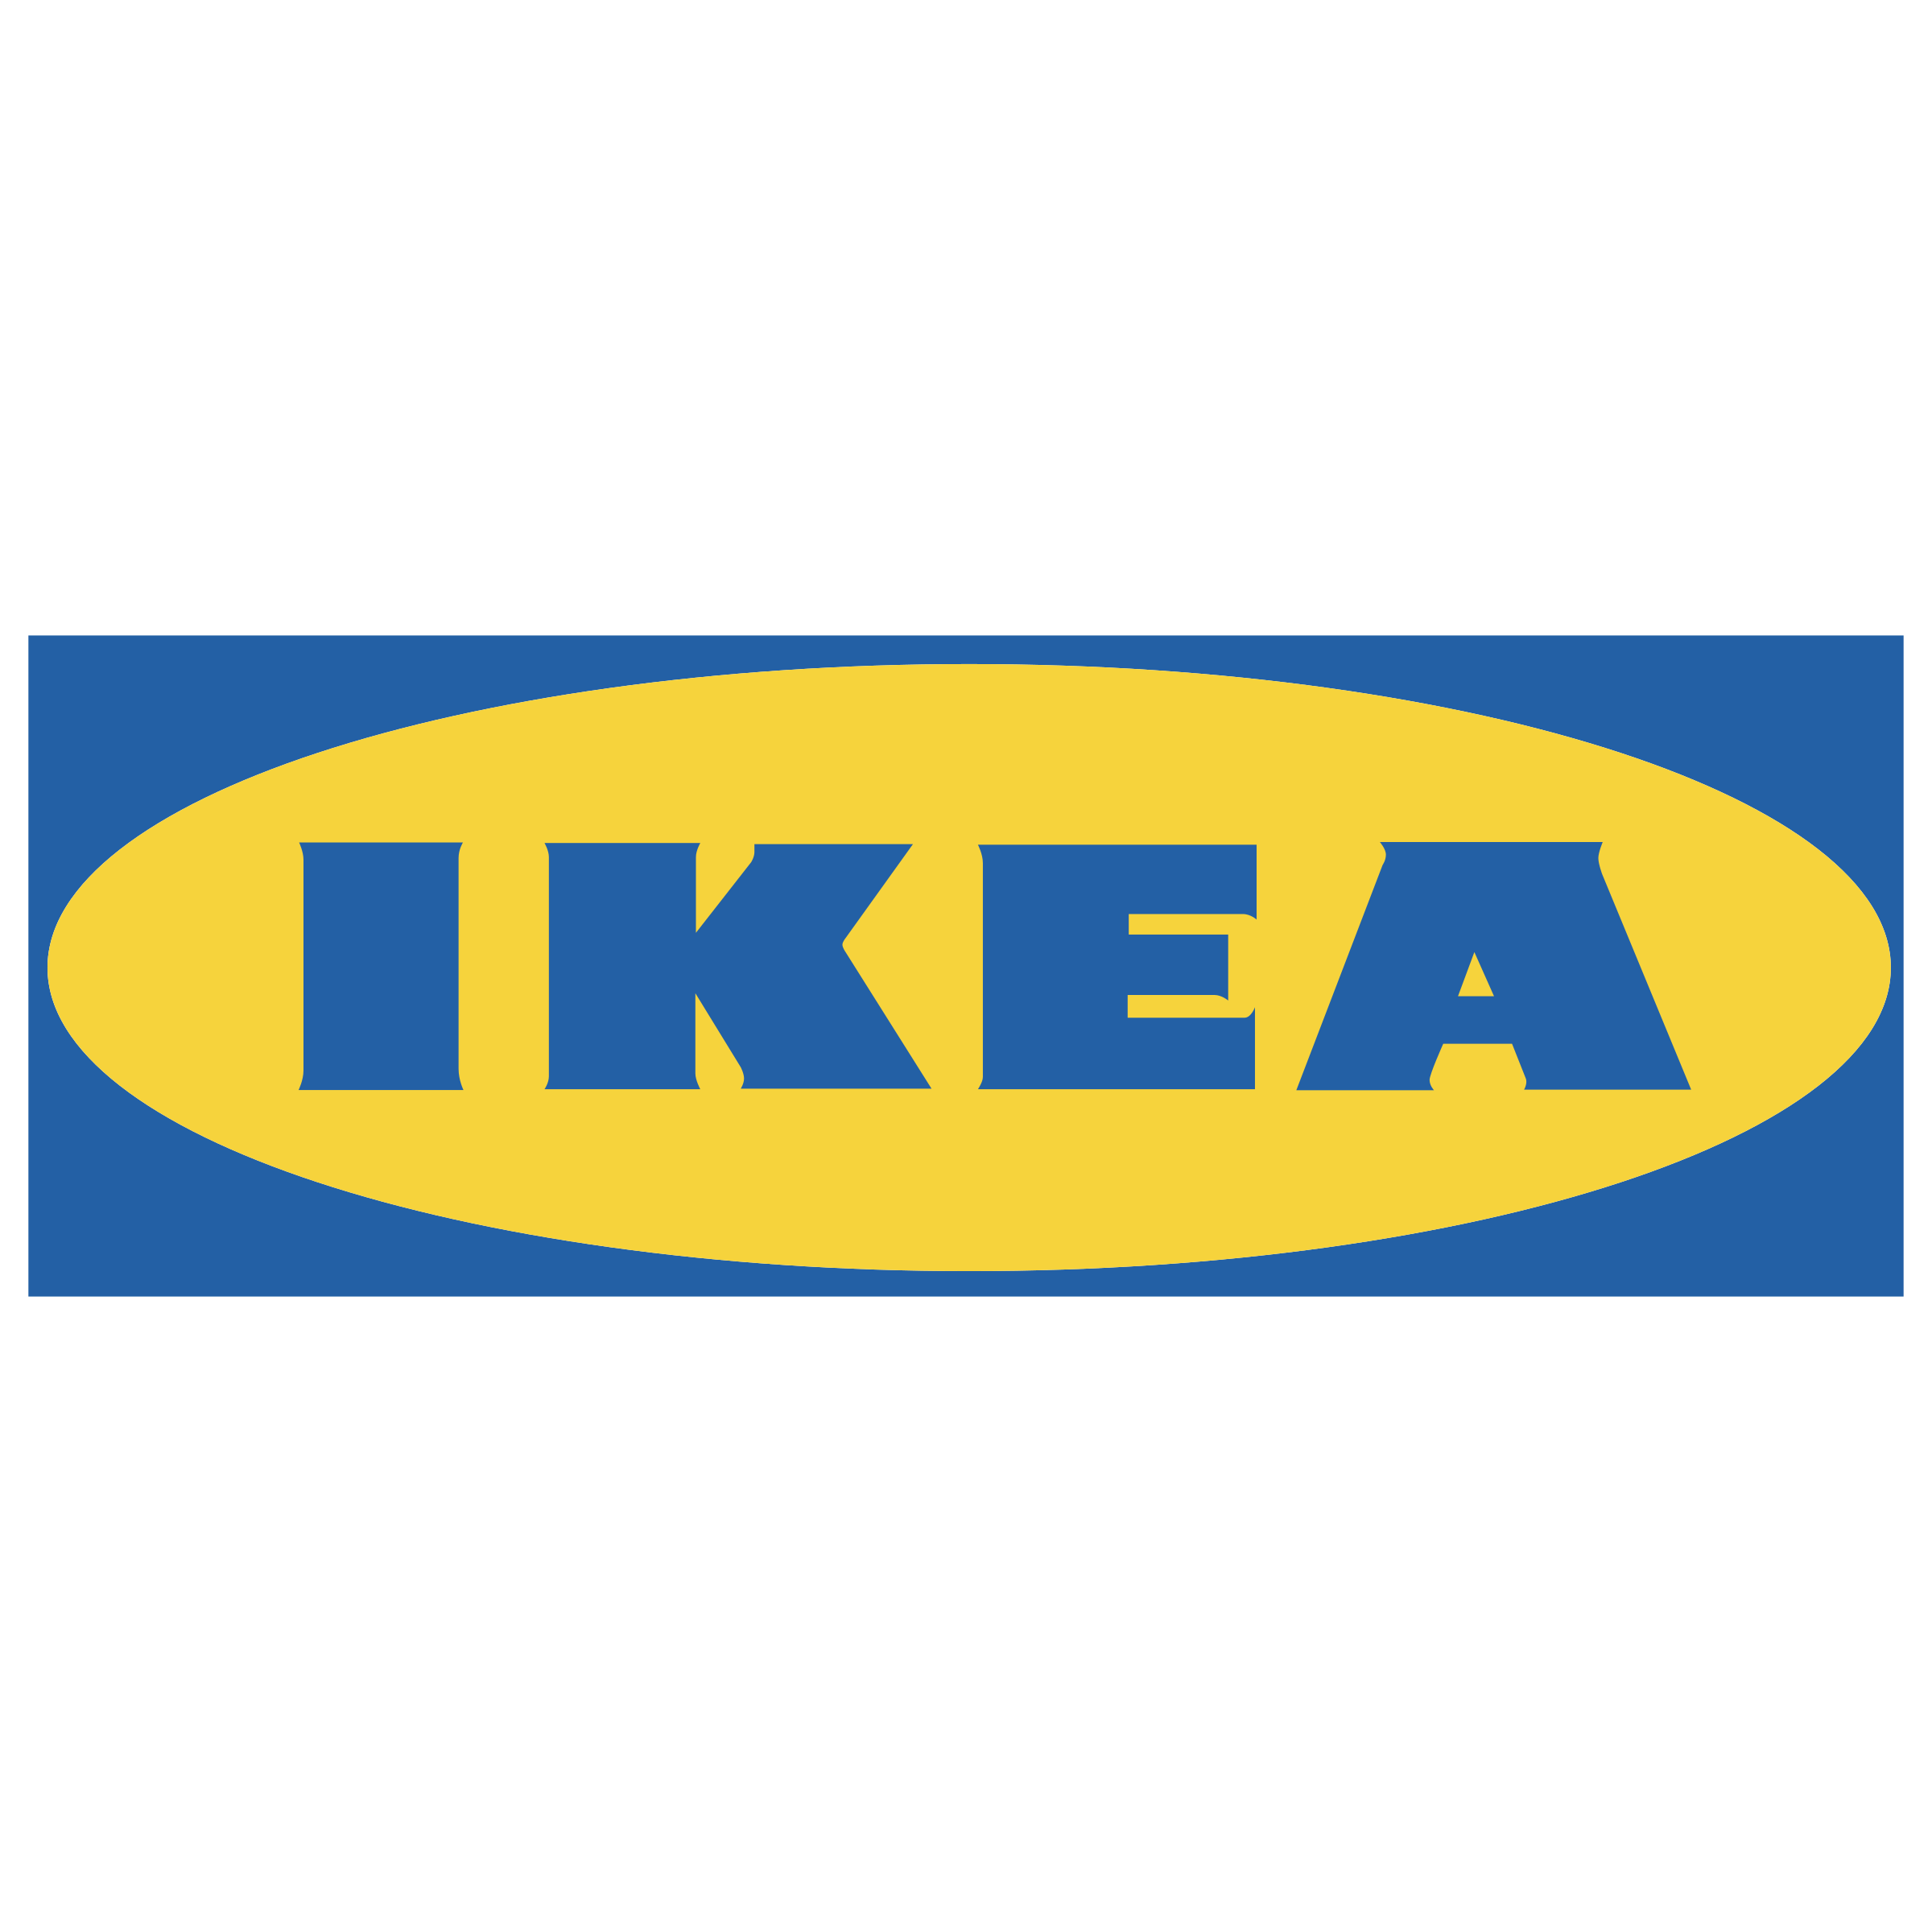 Ikea Logo PNG Transparent & SVG Vector.